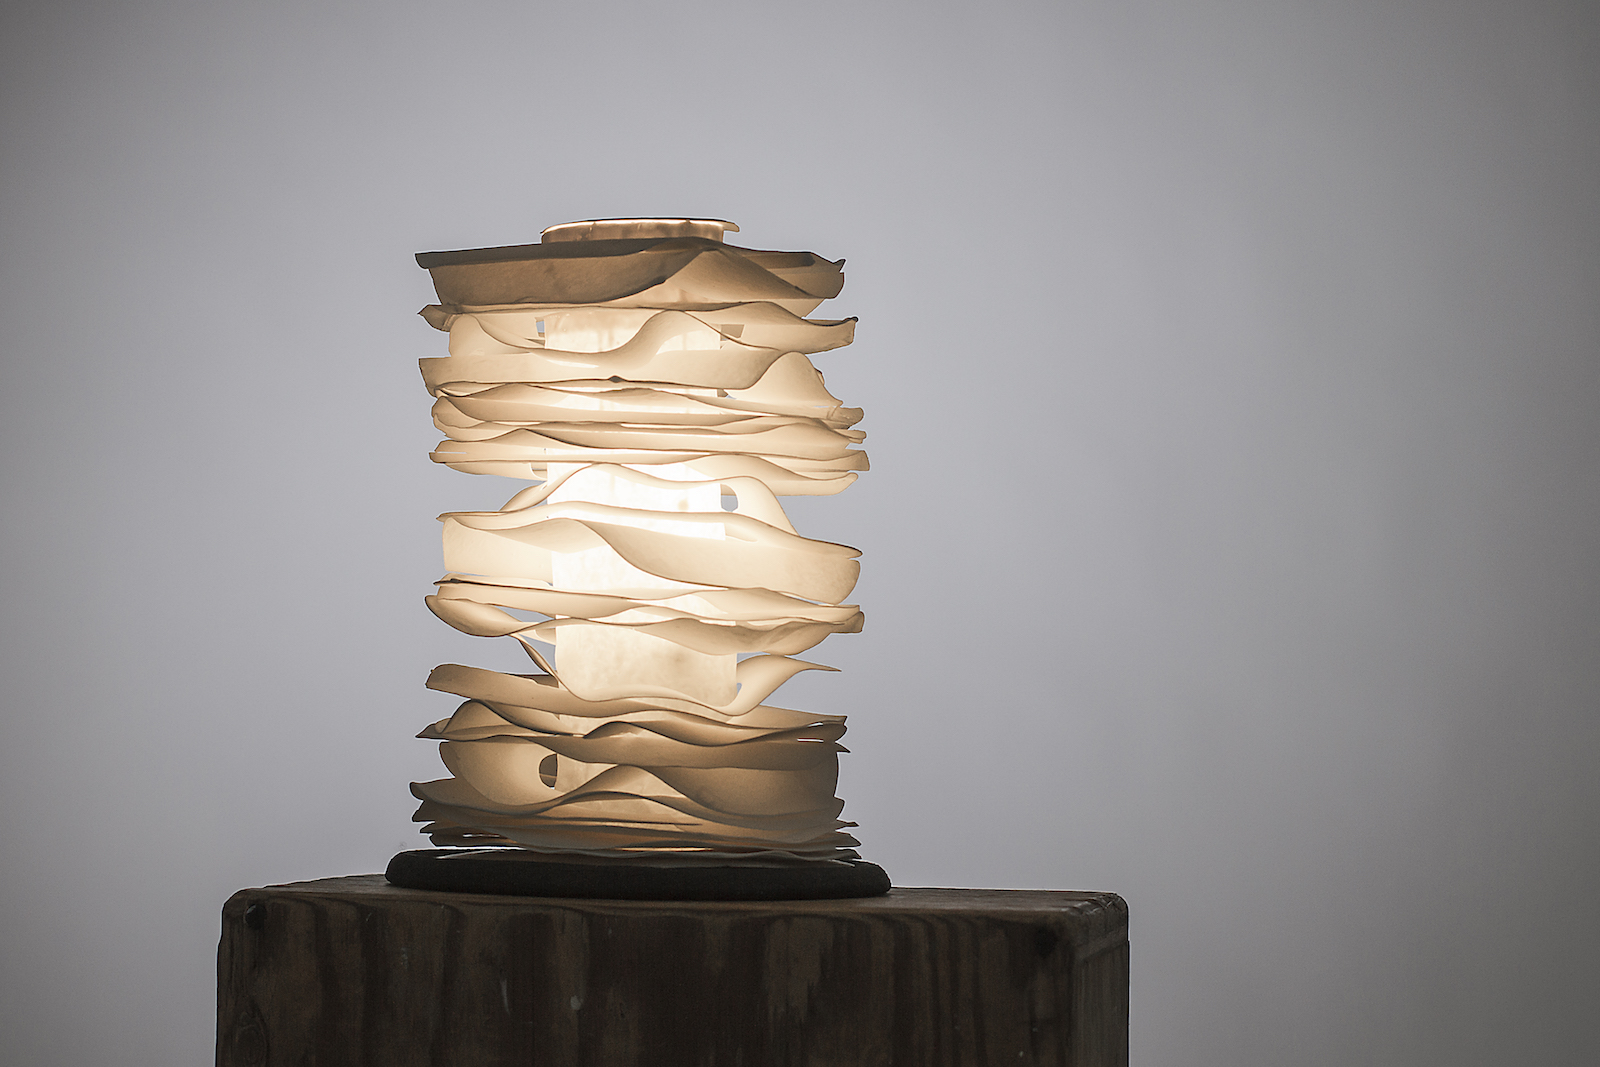 Cylindrical table lamp with wafer-like stacked porcelain layers